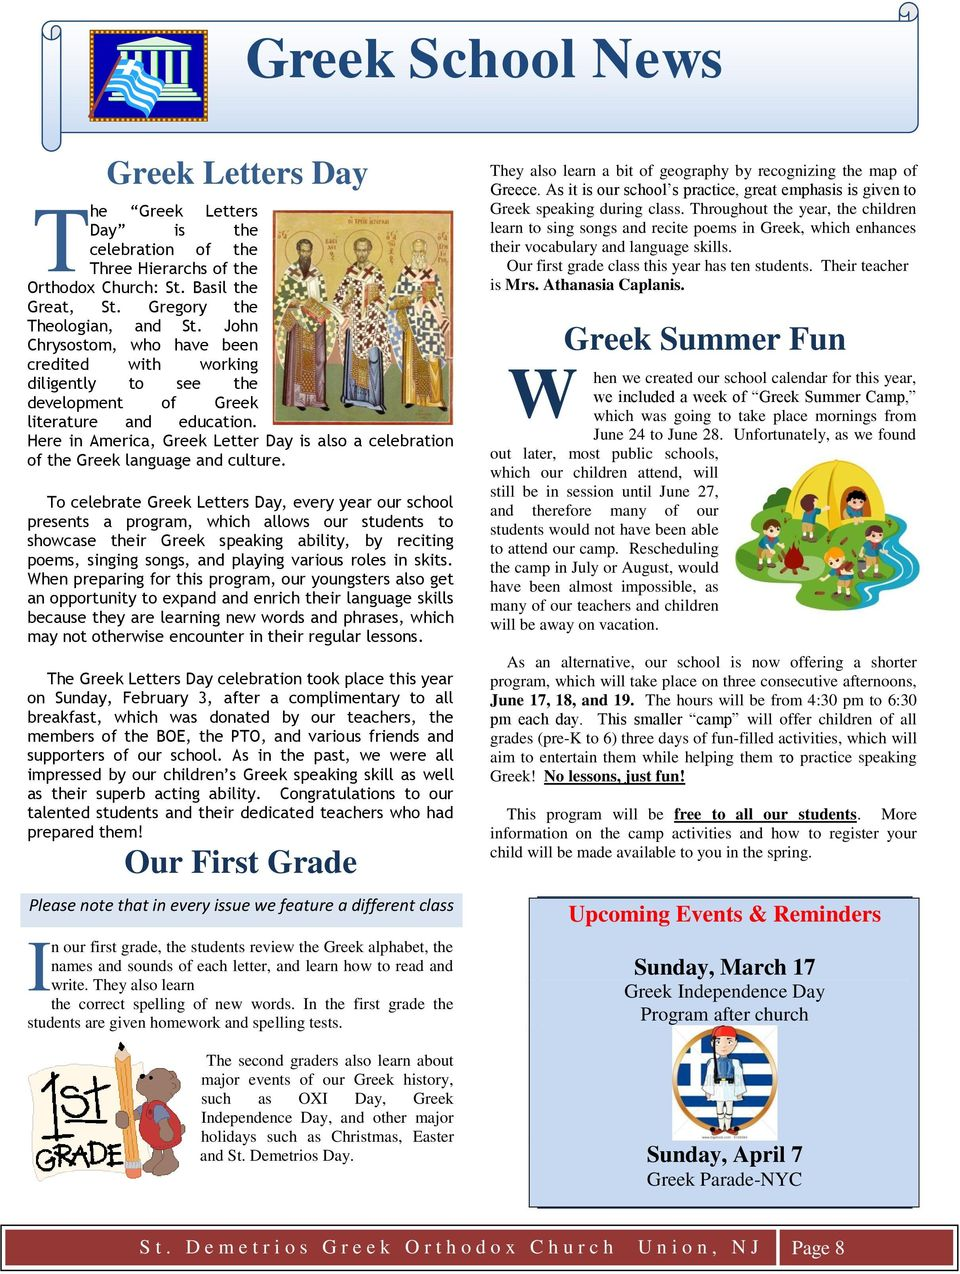 Here in America, Greek Letter Day is also a celebration of the Greek language and culture.